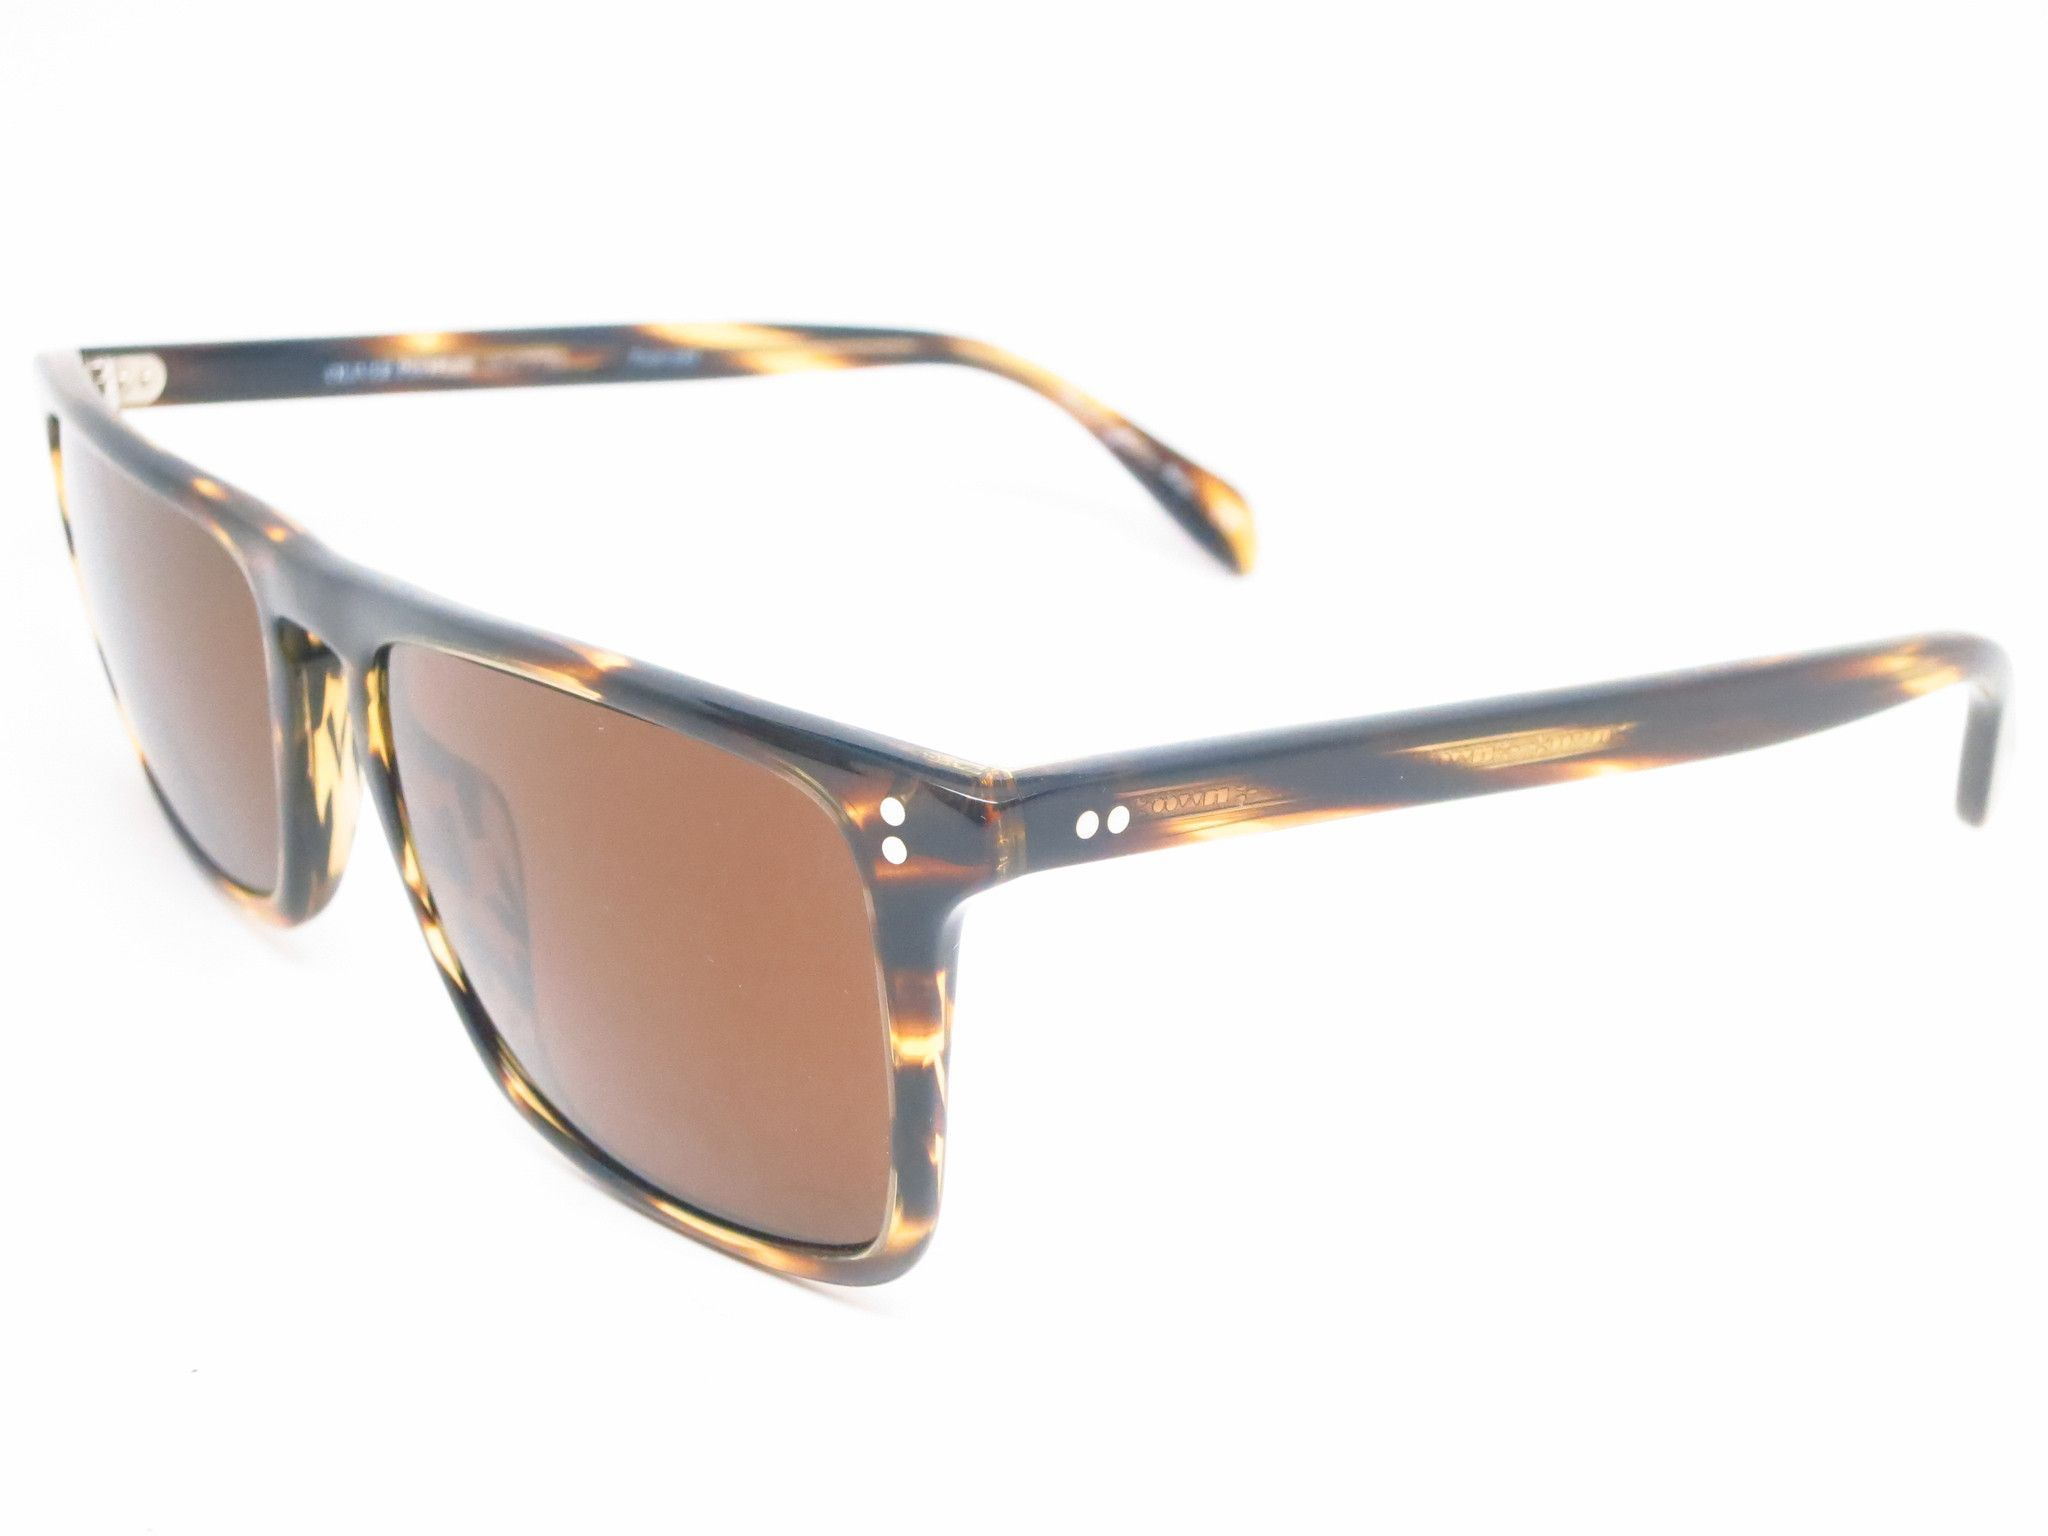 085e48a39e1 Polarised Sunglasses · Music Genre · Brand   Oliver Peoples Model Number    OV 5189 Model Name   Bernardo - Color Code